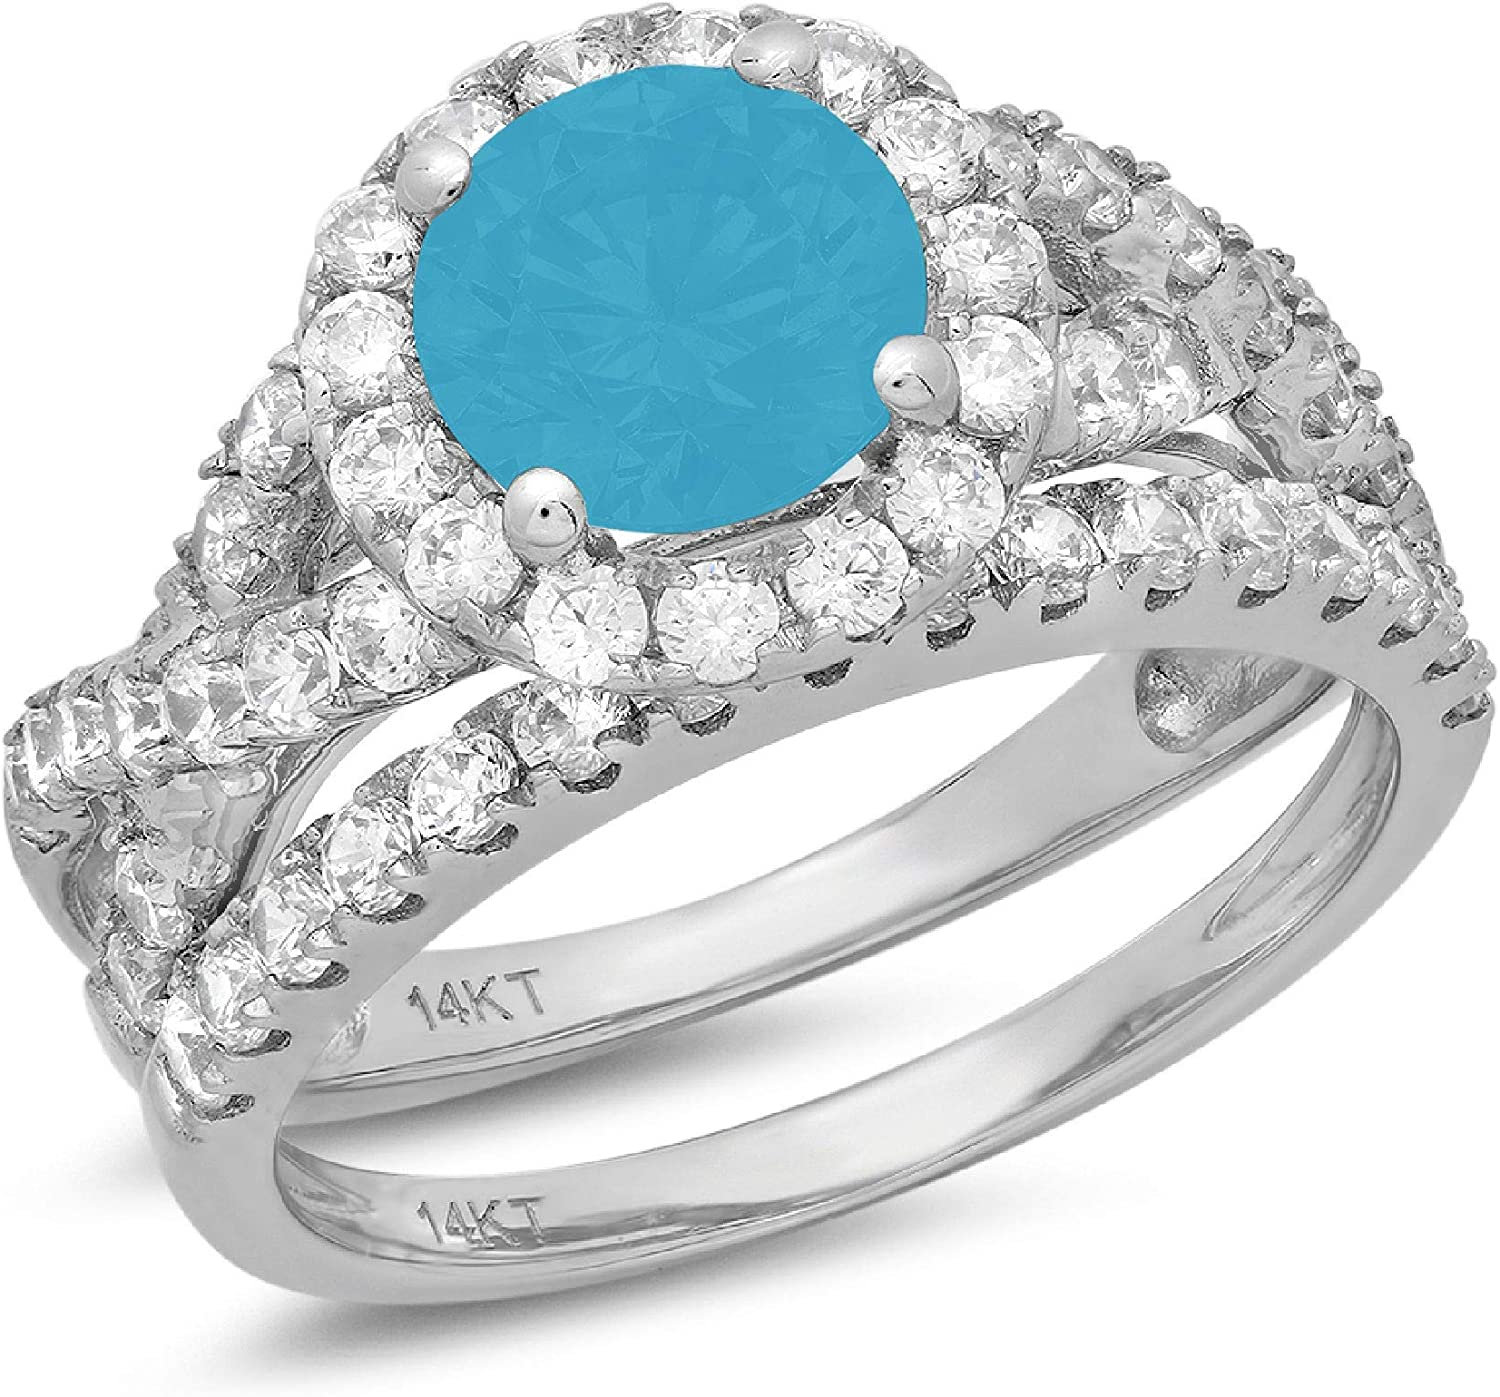 Clara Pucci 2.40ct Round Cut Halo Unique Solitaire Accent Genuine Flawless Simulated Turquoise Engagement Promise Statement Anniversary Bridal Wedding Ring Band set Solid 18K White Gold